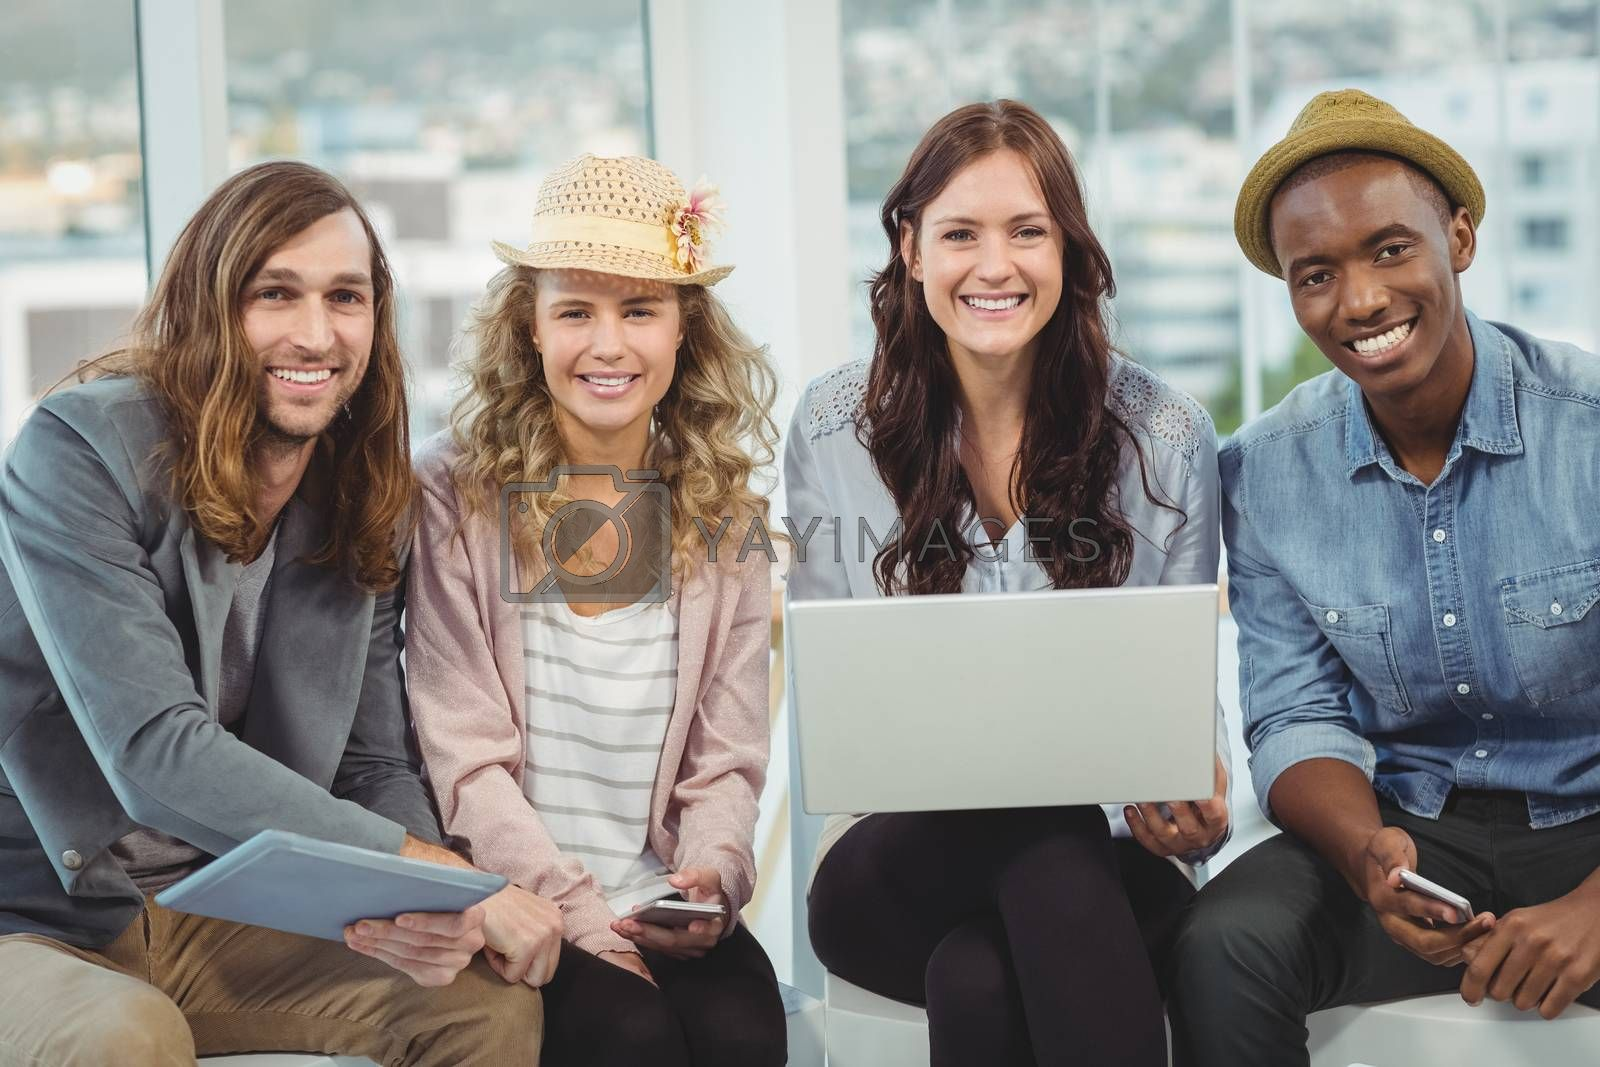 Portrait of smiling business people with laptop and digital tablet while sitting on chair in office